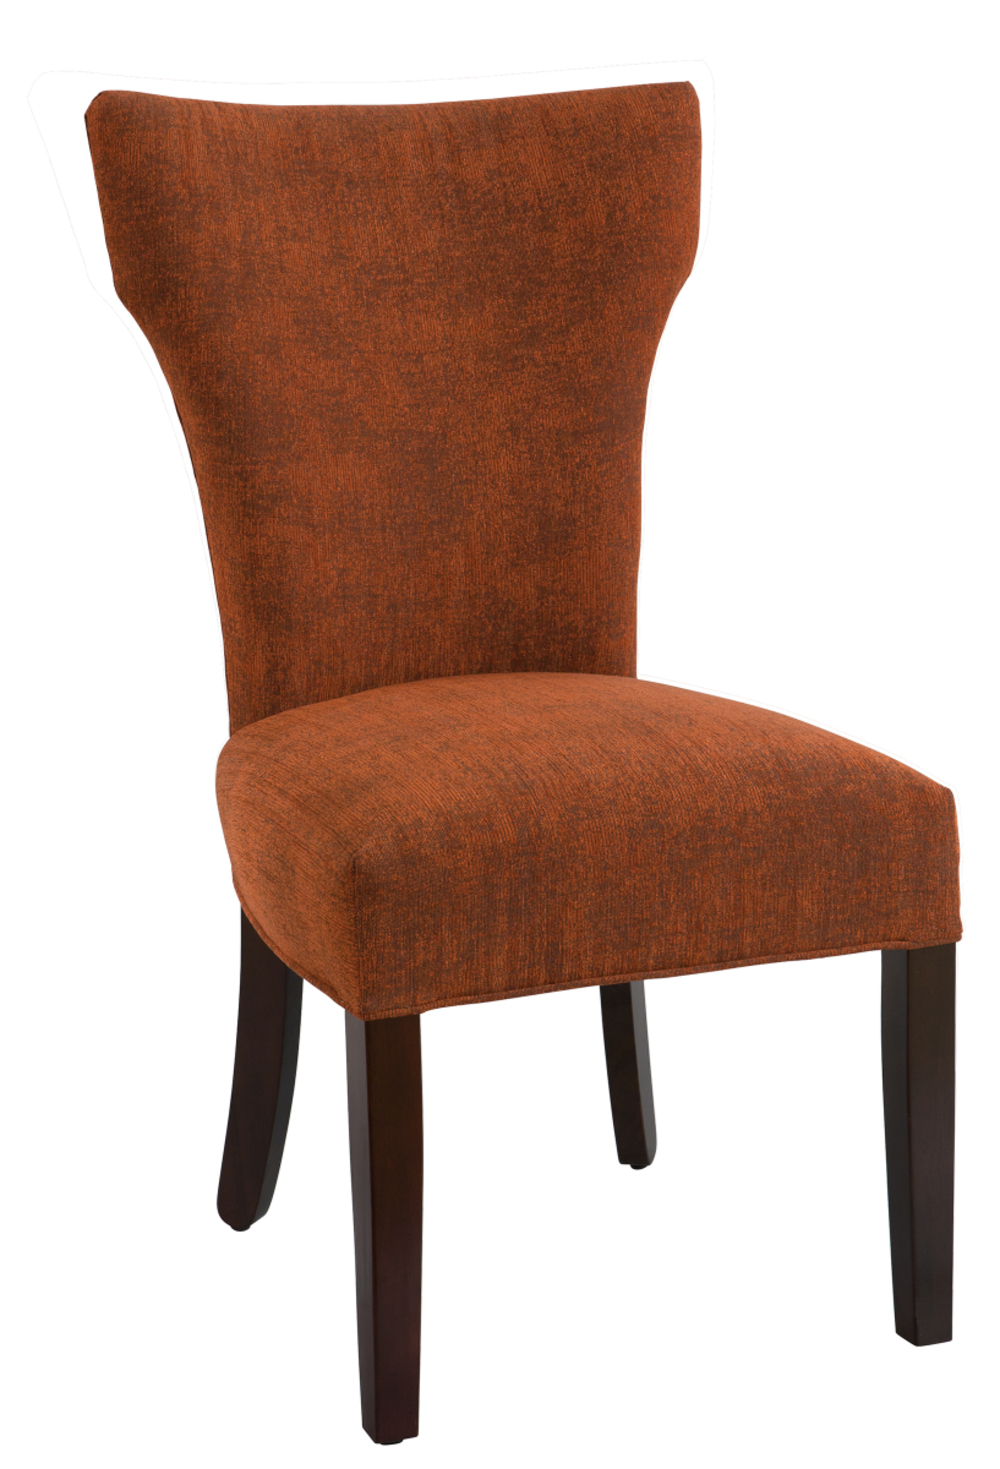 Hekman Furniture - Brianna Dining Chair, French Roast